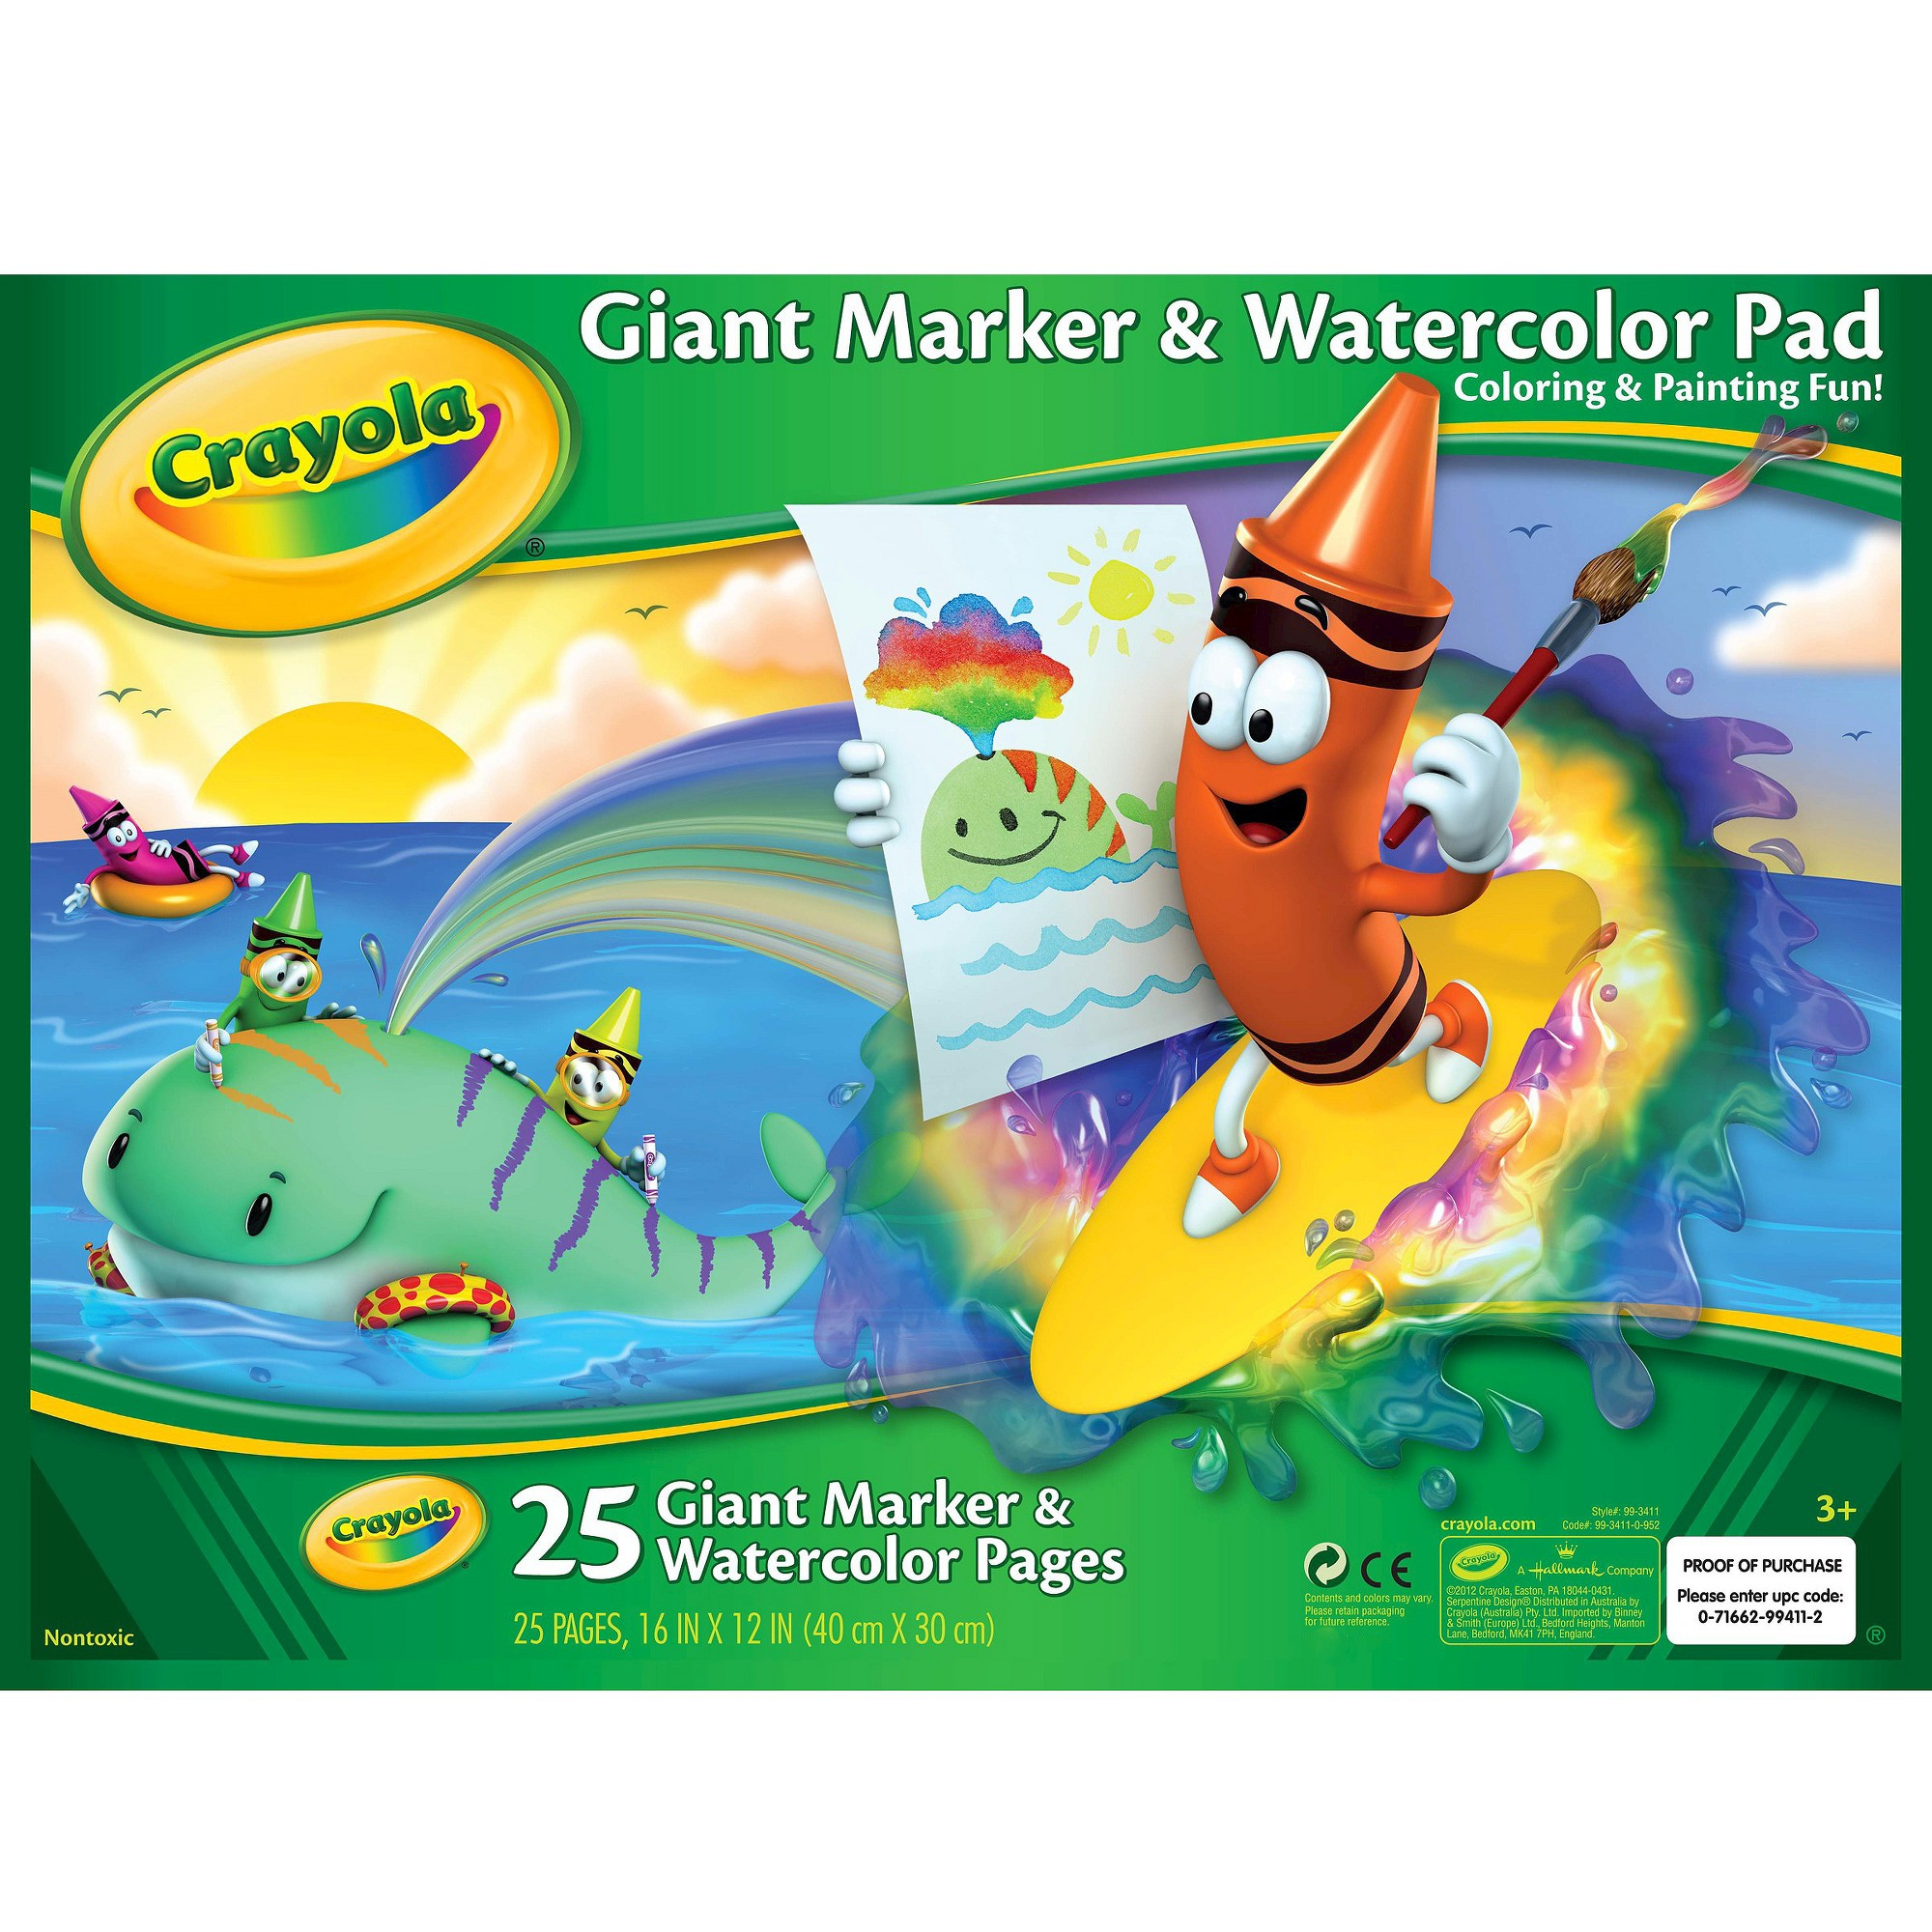 Crayola Giant Marker Watercolor Pad 25pgs White Art Videos